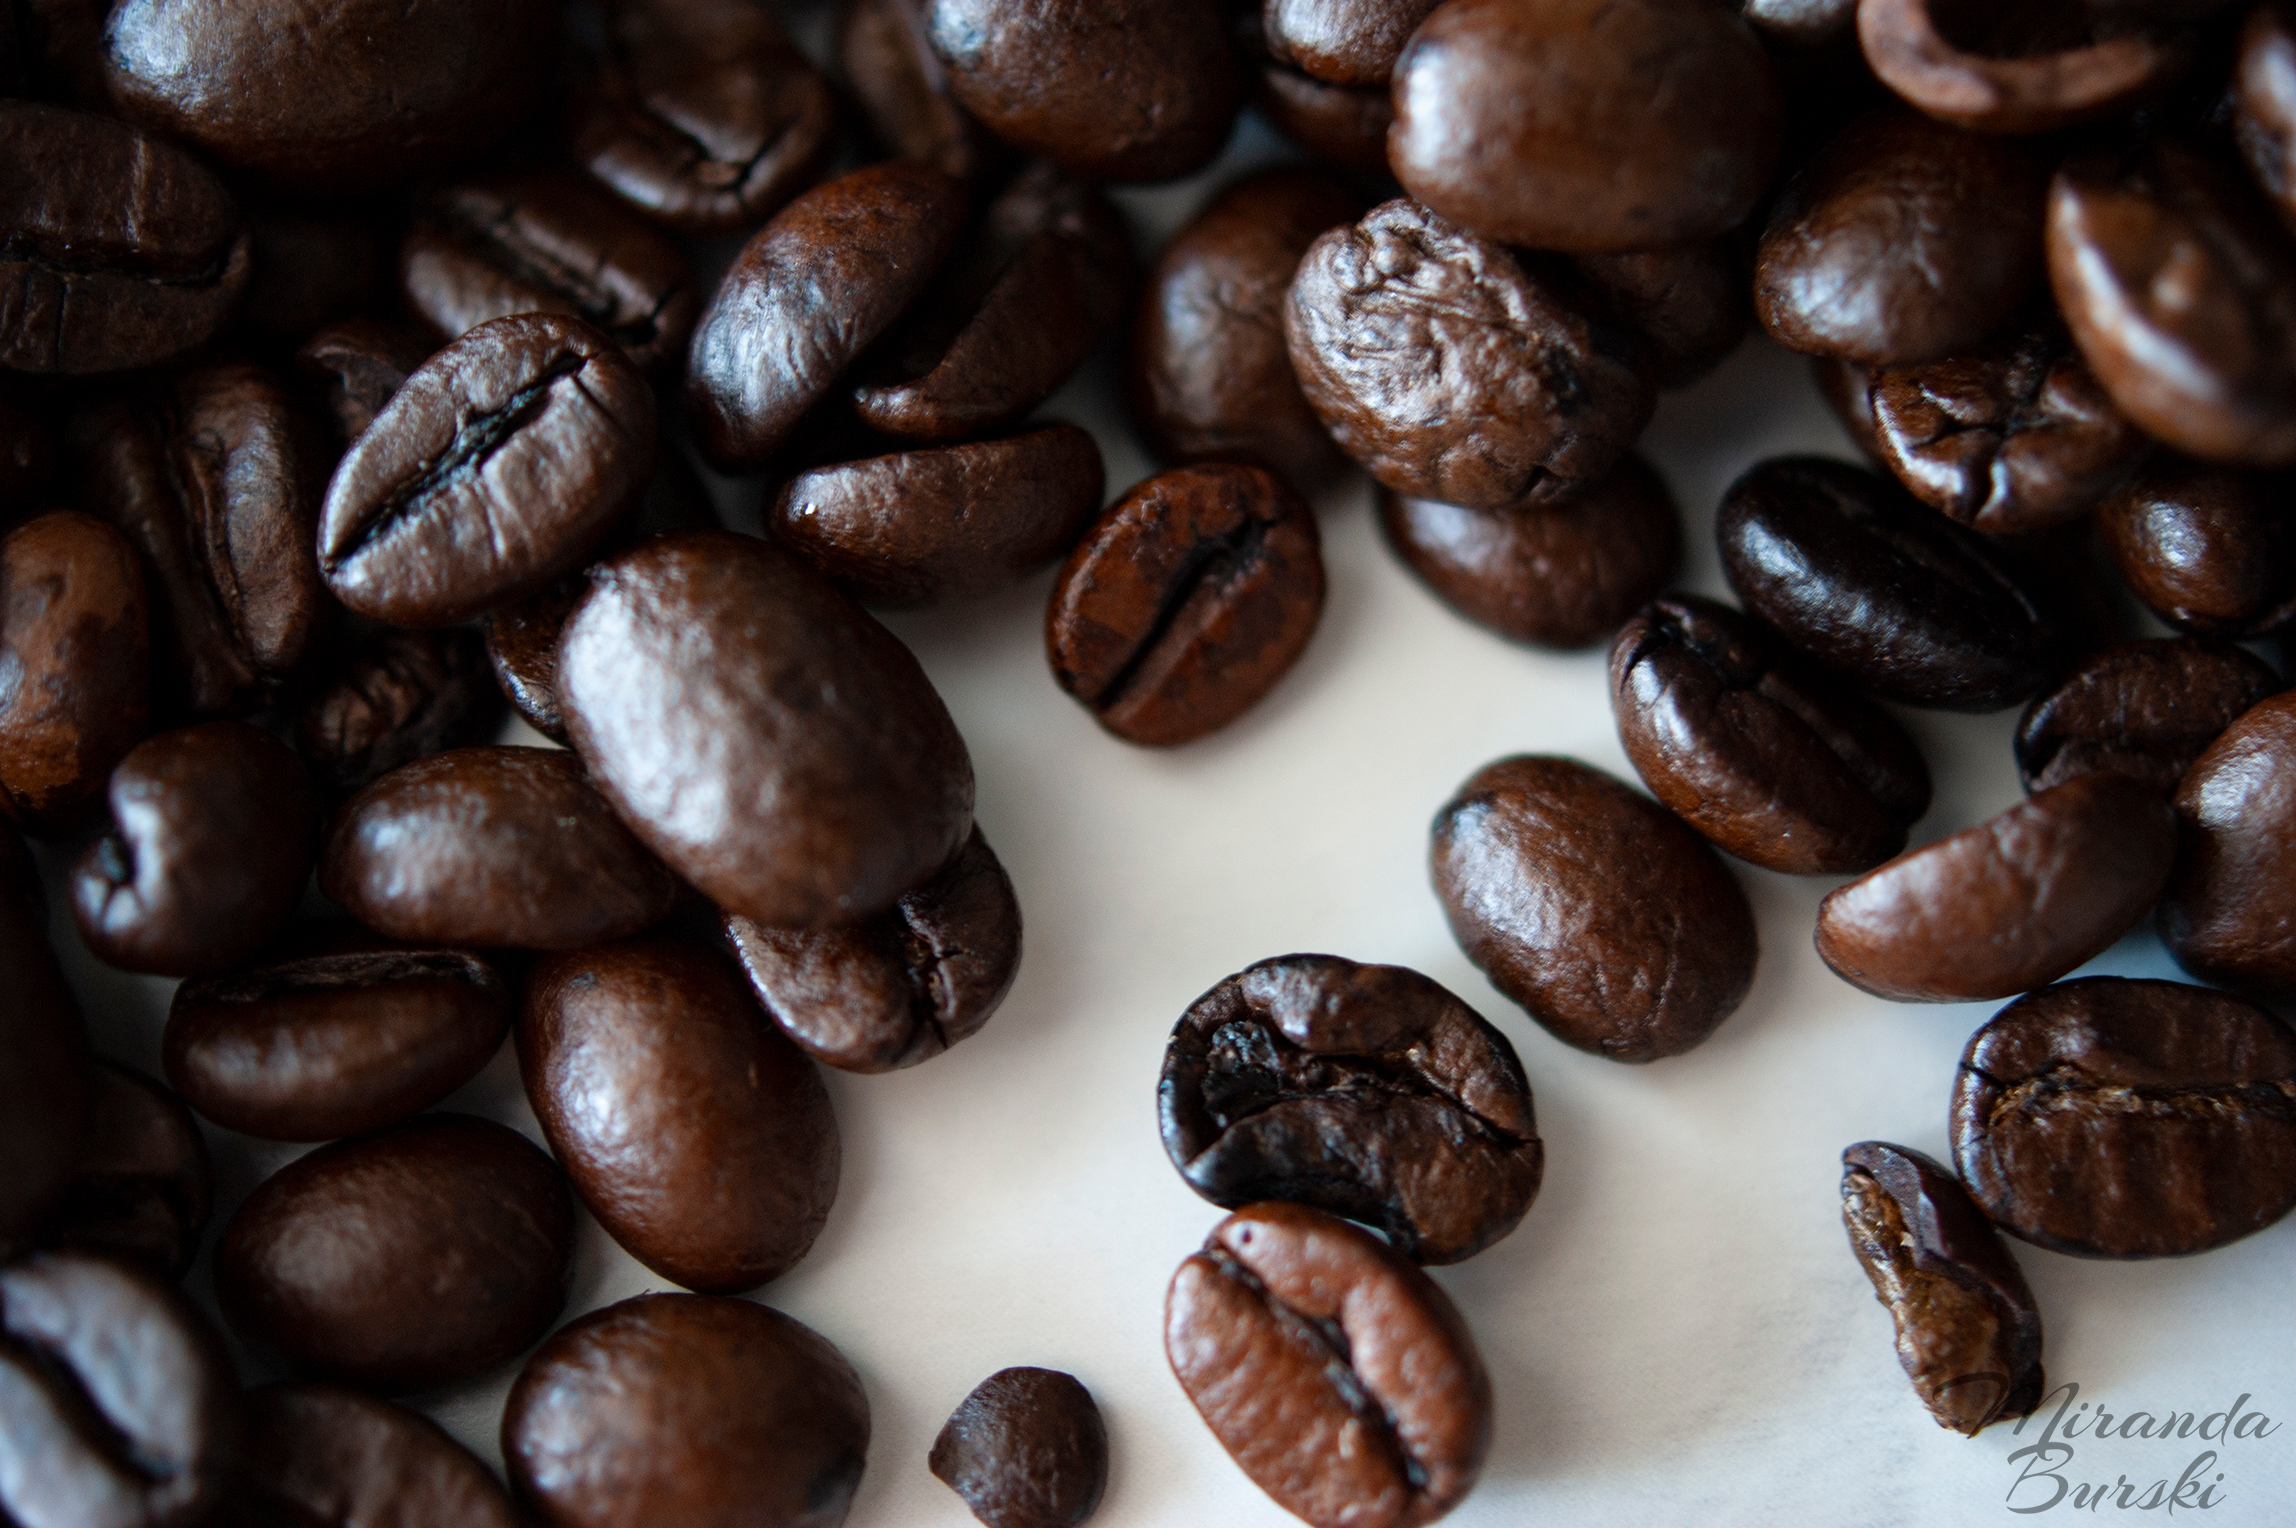 A collection of coffee beans on a white background.